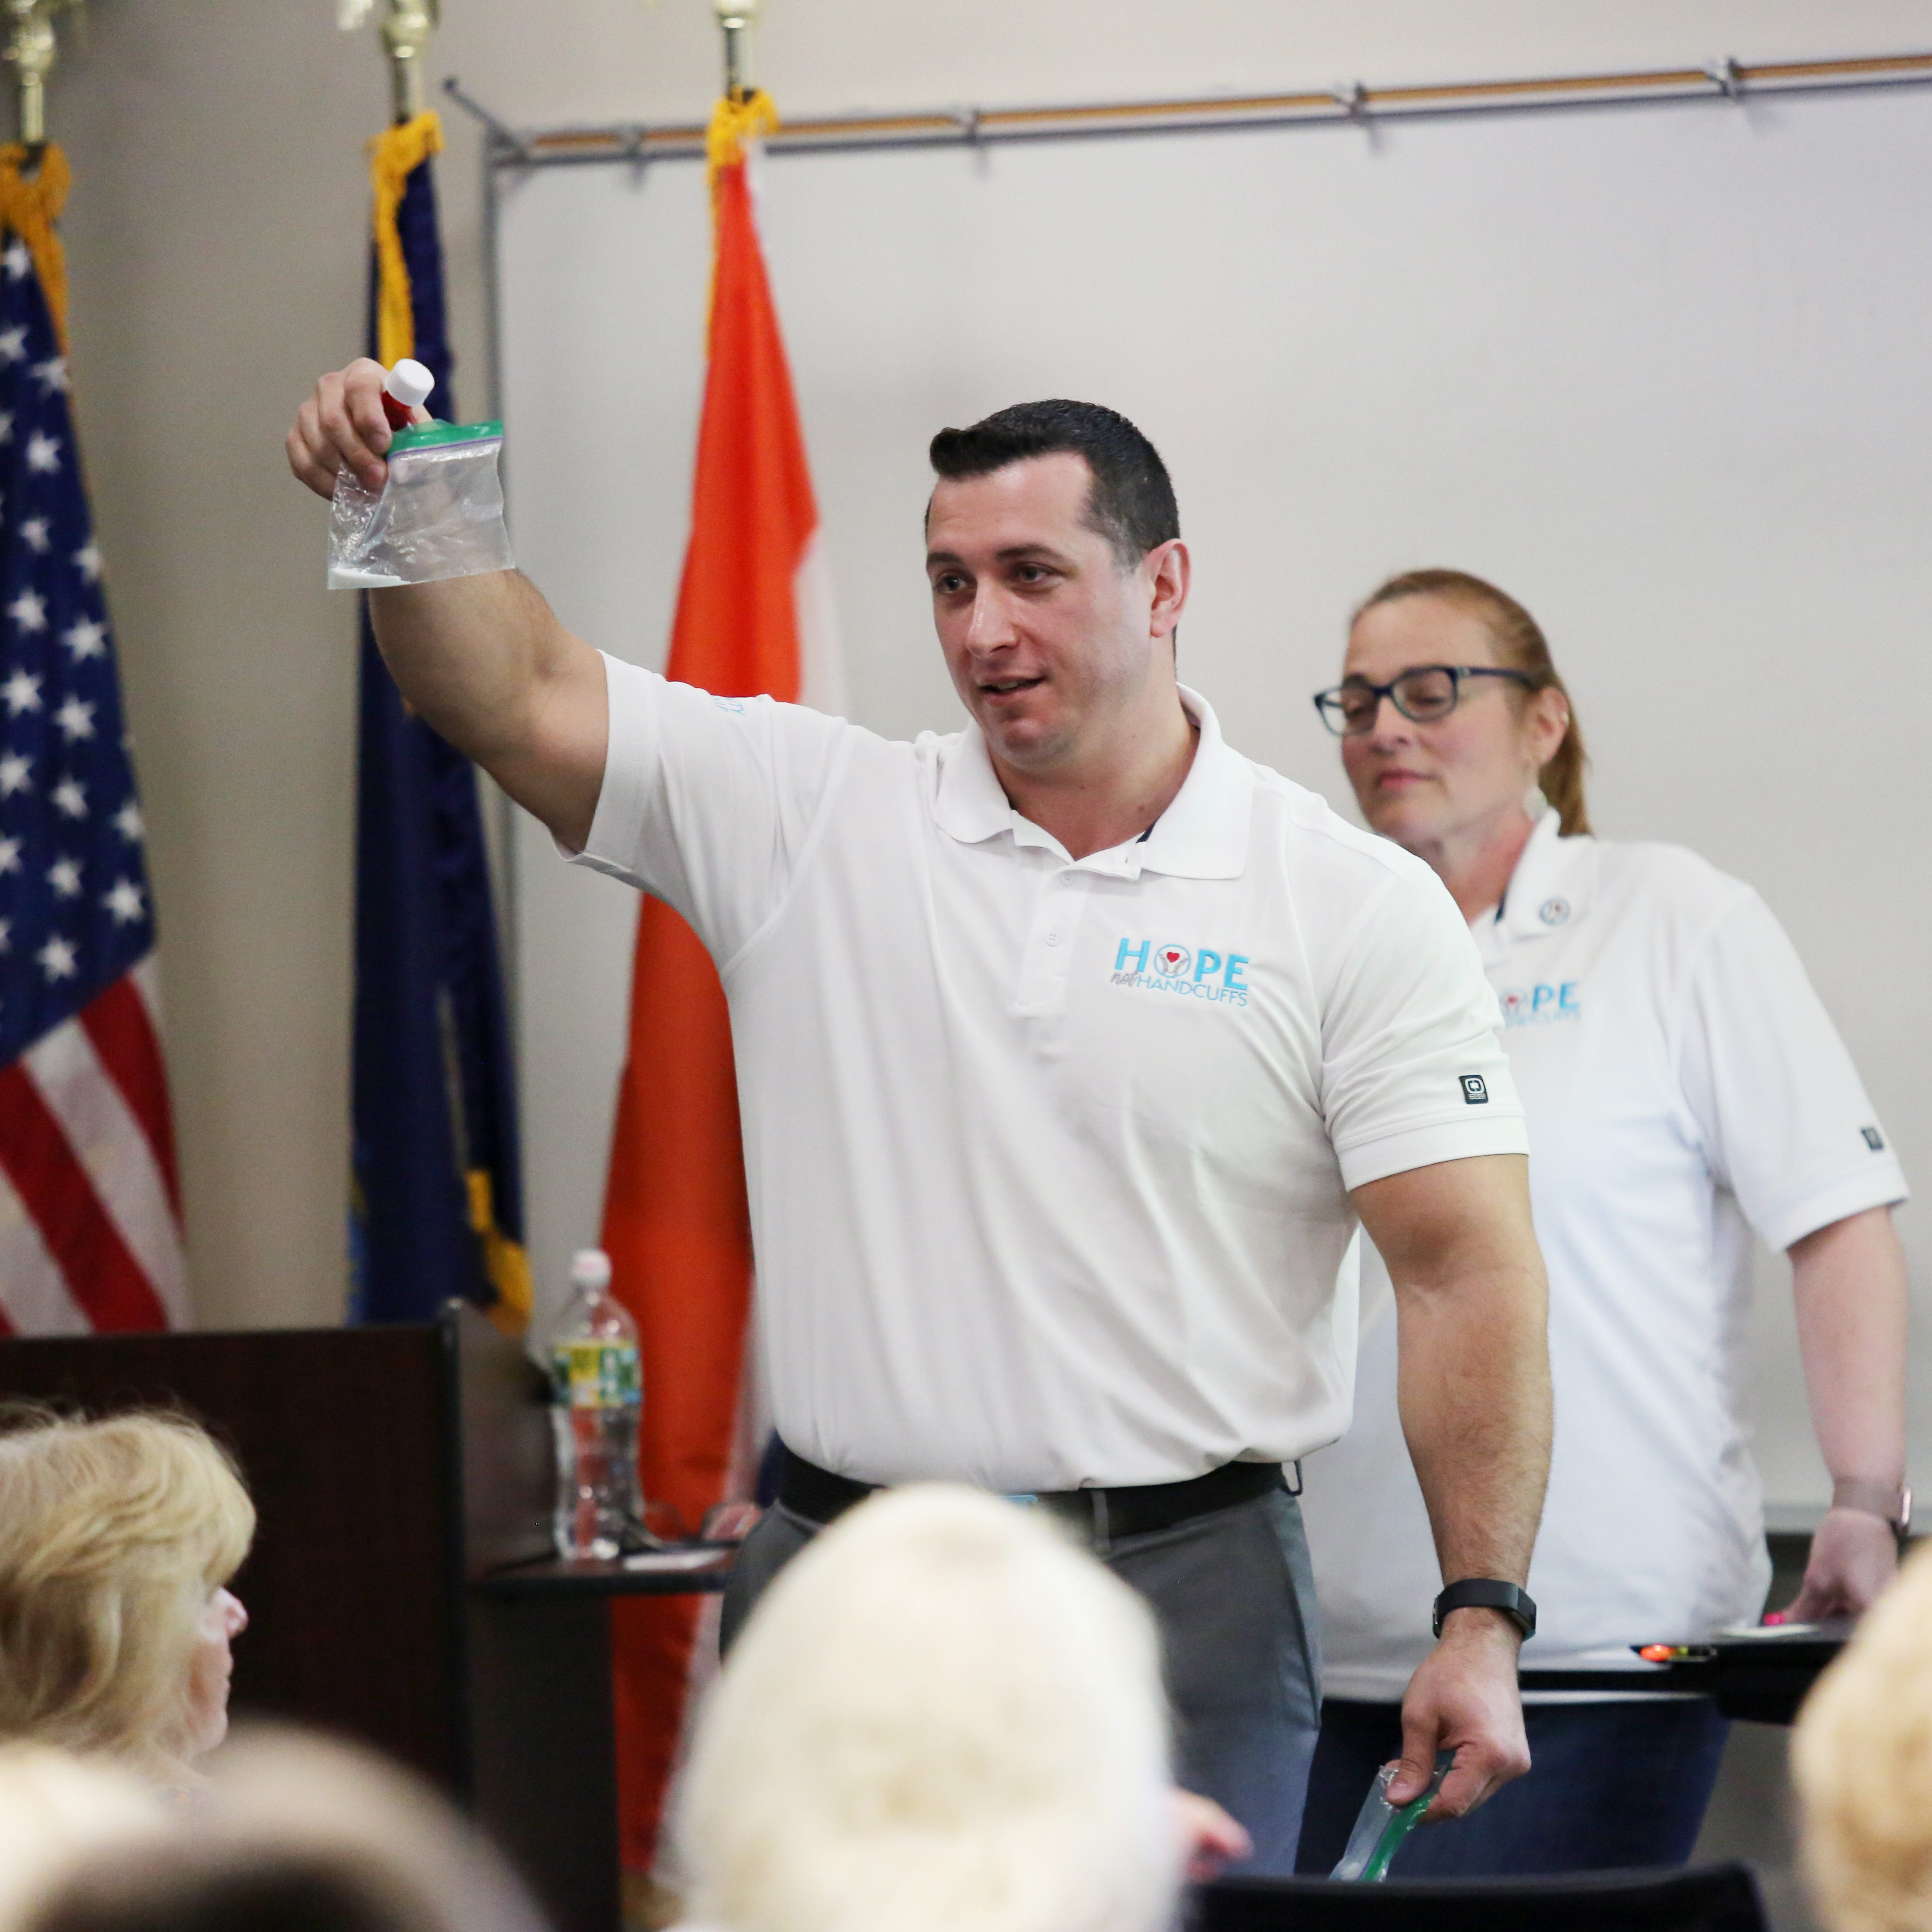 Montgomery Det. Sgt. Guy Farina, law enforcement liaison for Hope Not Handcuffs — Hudson Valley, explains the different drug possession charges at a volunteer training session in Poughkeepsie on May 15, 2019.